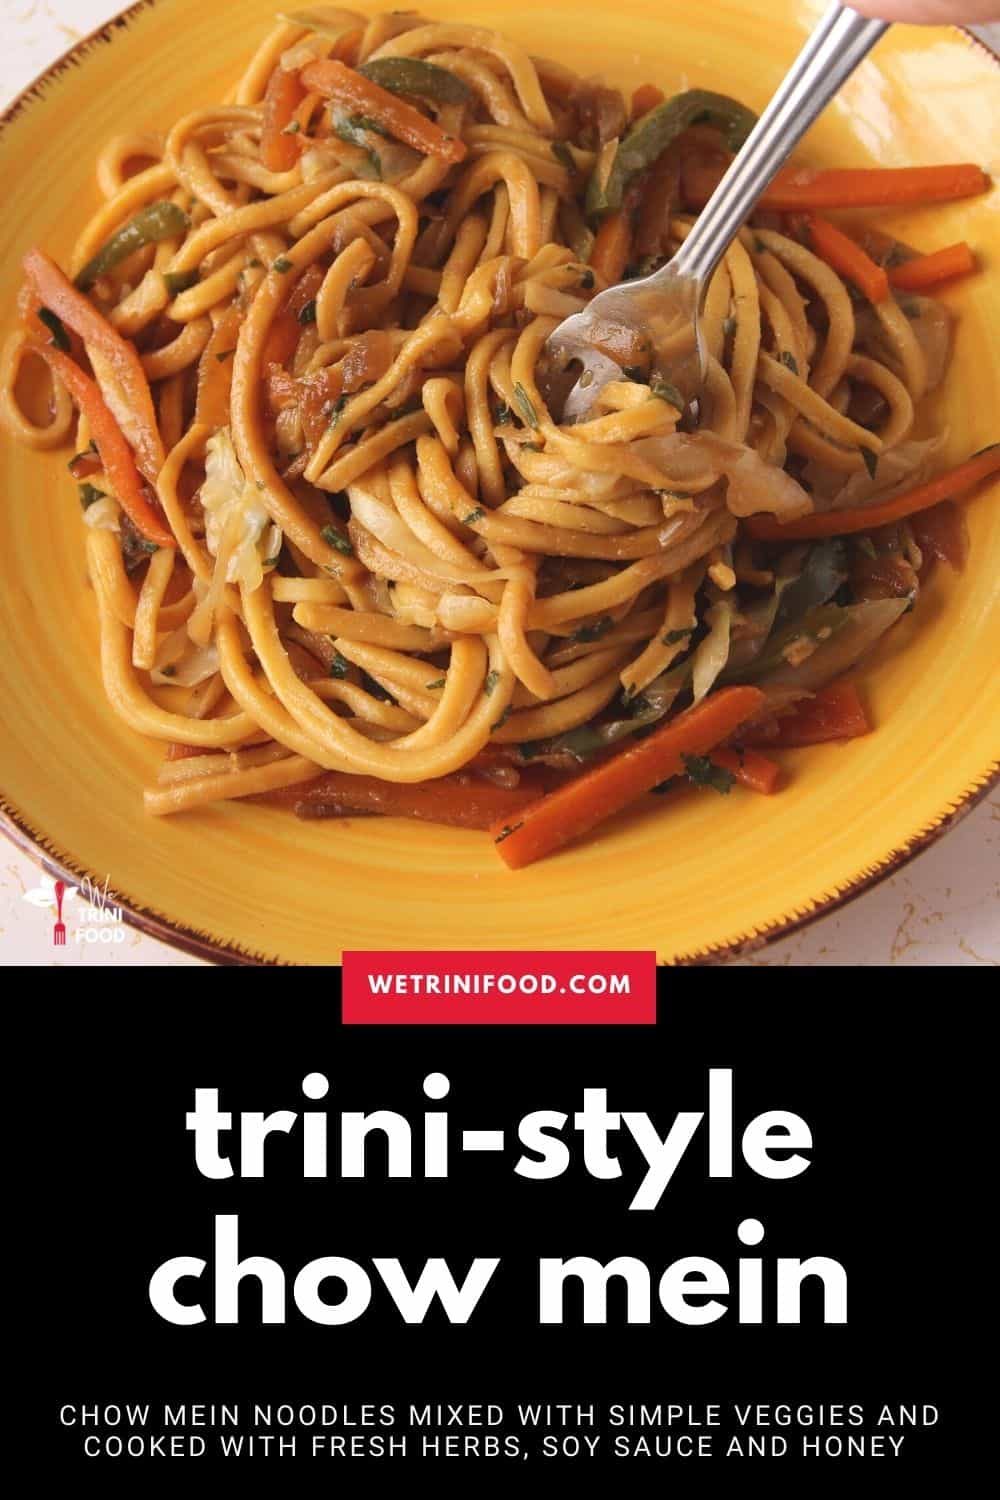 trini chow mein noodles recipe for pinterest